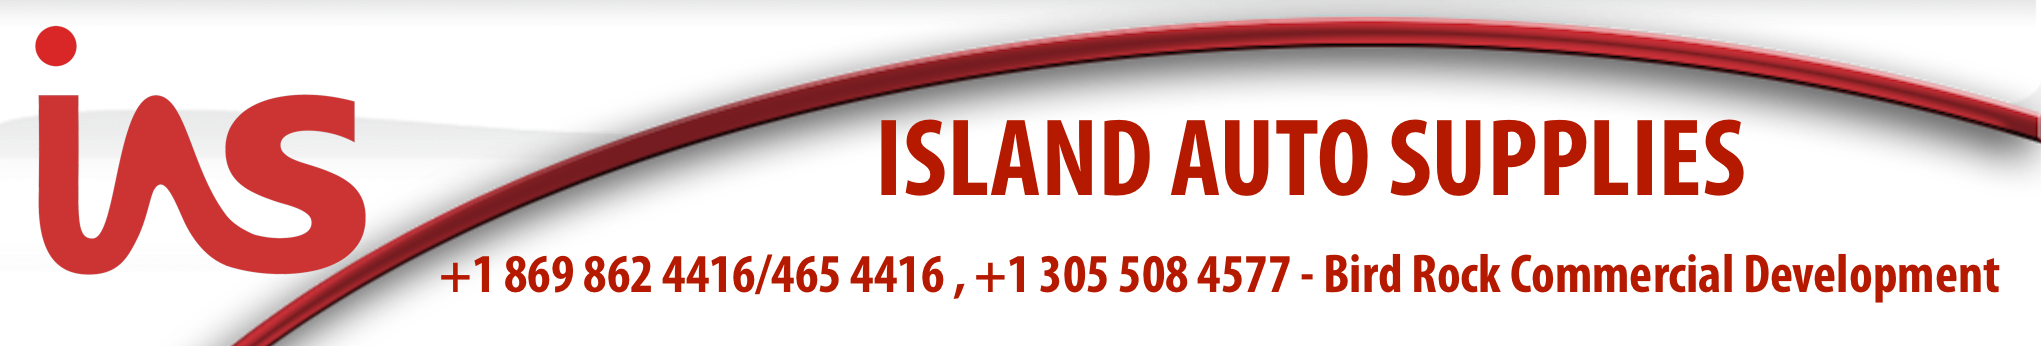 IASKN - ISLAND AUTO SUPPLIES